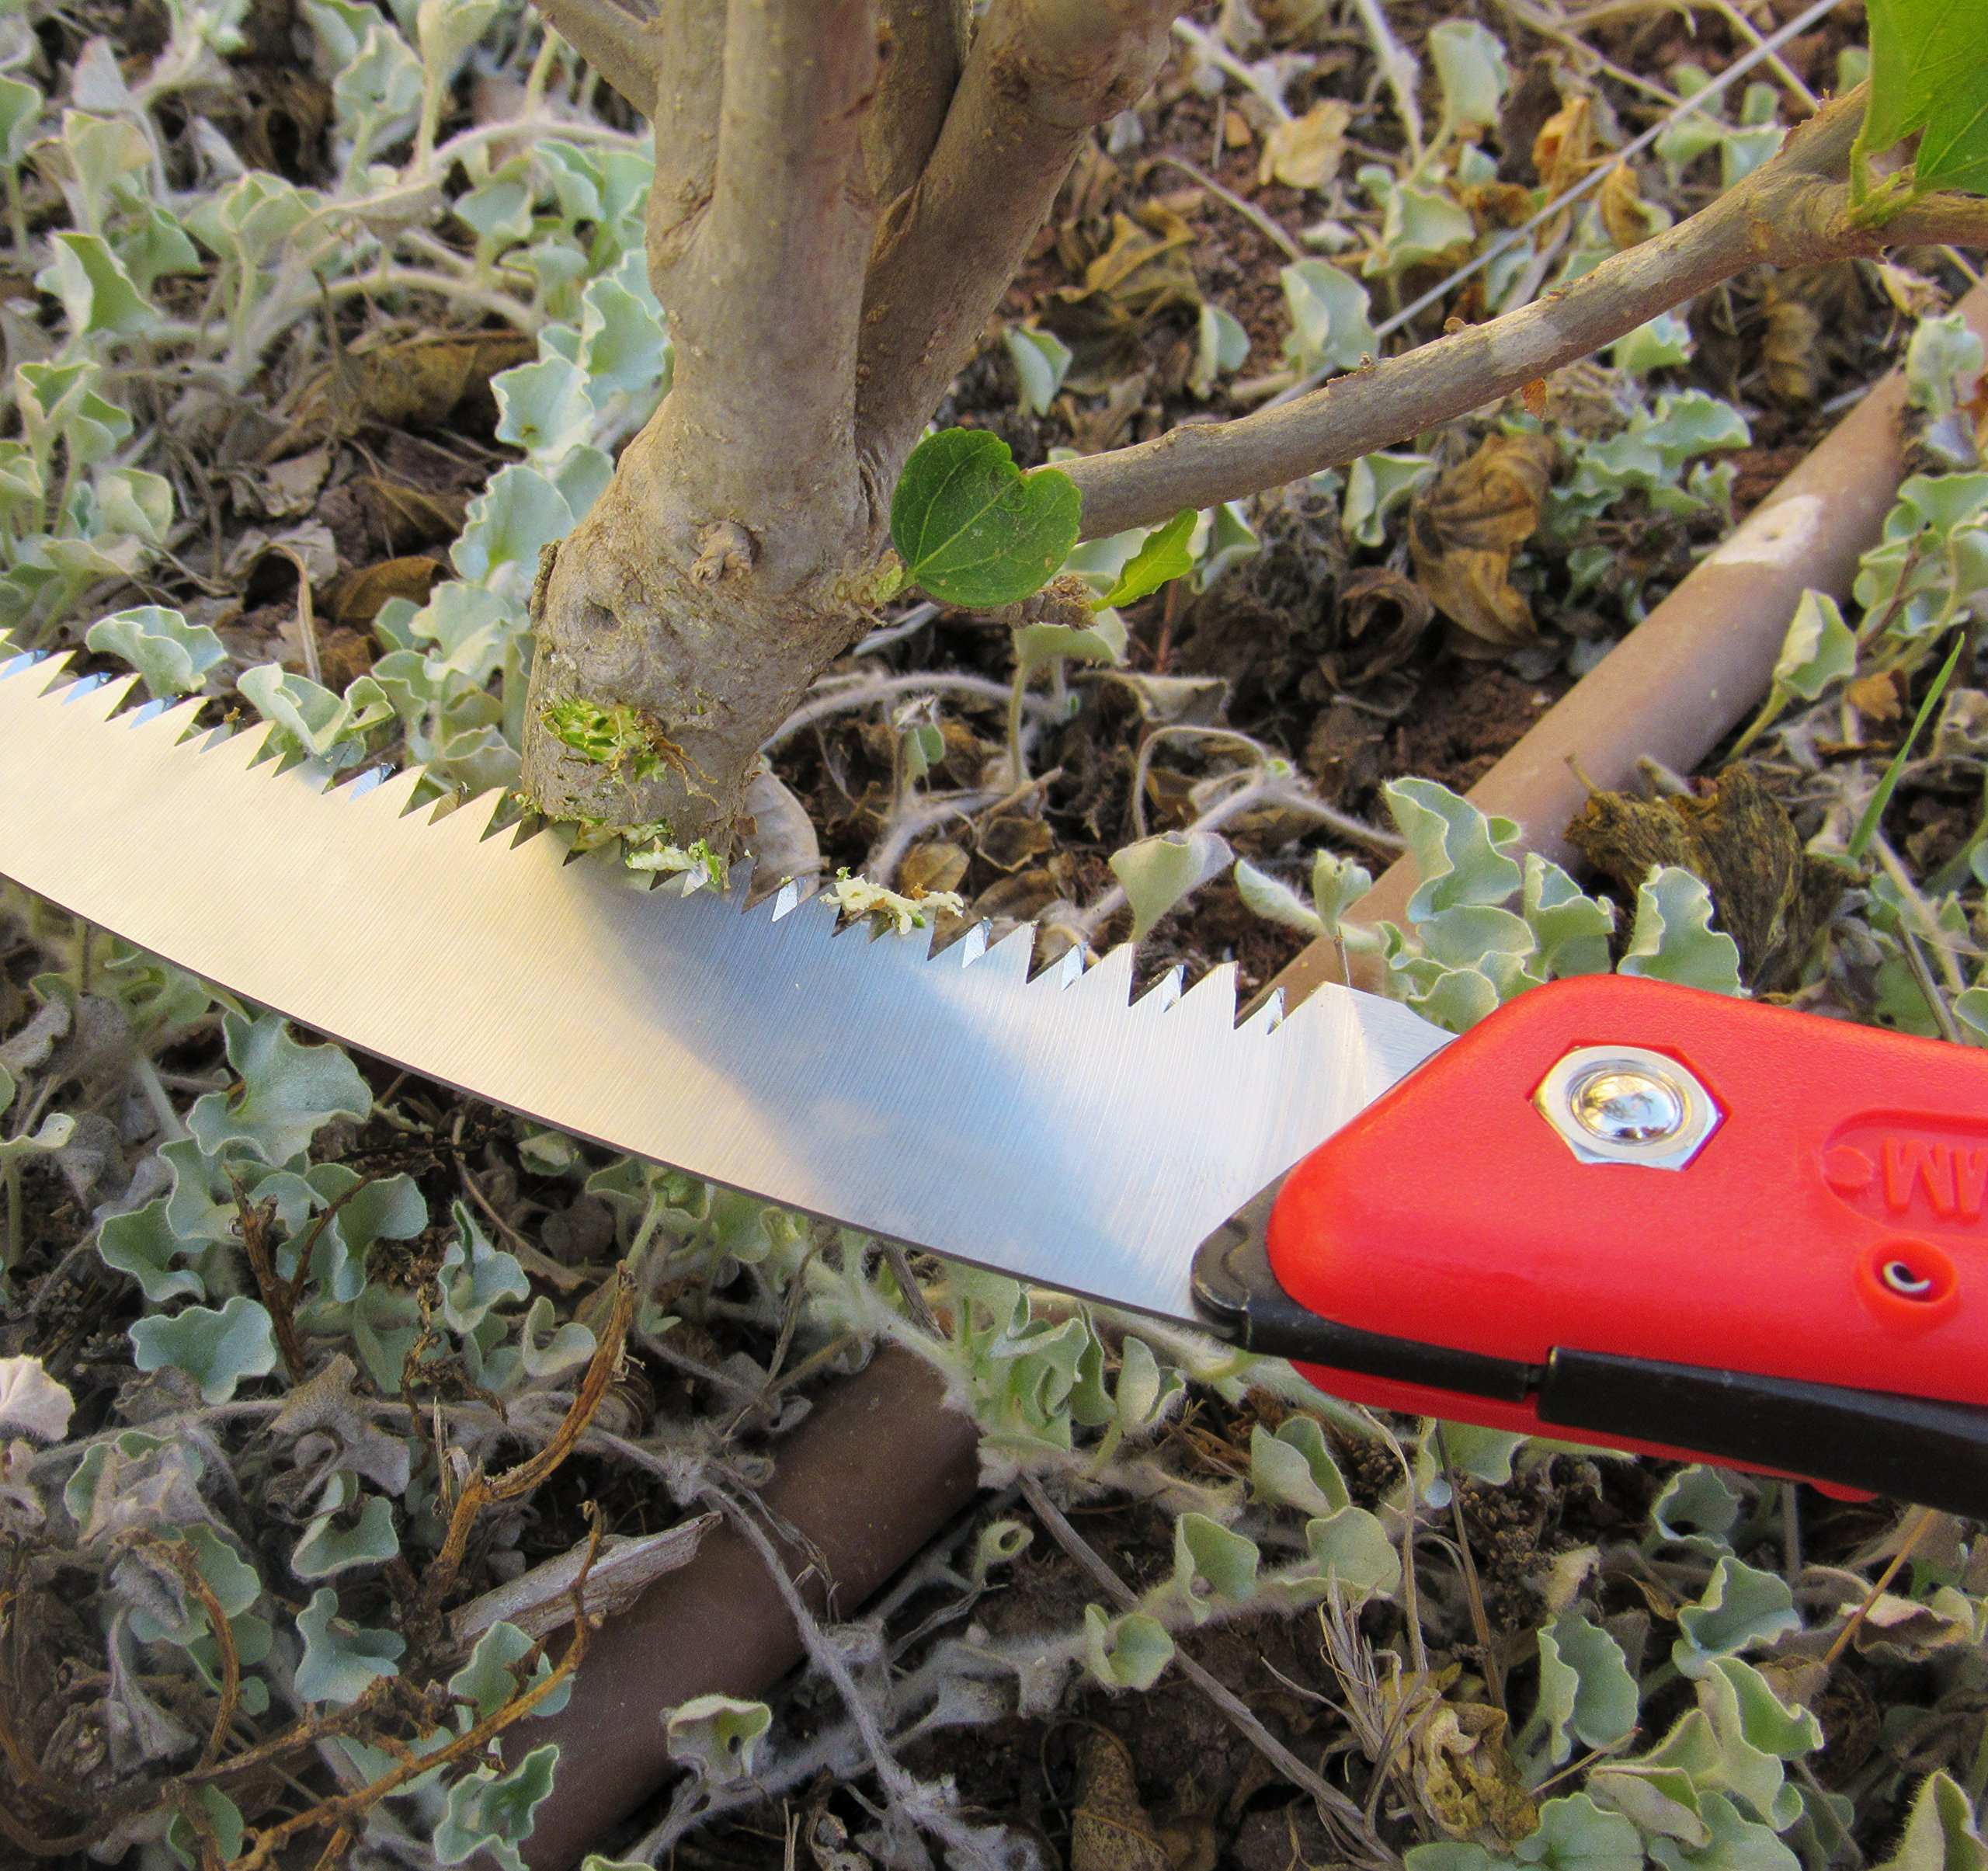 TABOR TOOLS TTS25A Folding Saw with Curved Blade and Rugged Grip Handle, Hand Saw for Pruning Trees, Trimming Branches, Camping, Clearing Forest Trails. by TABOR TOOLS (Image #8)